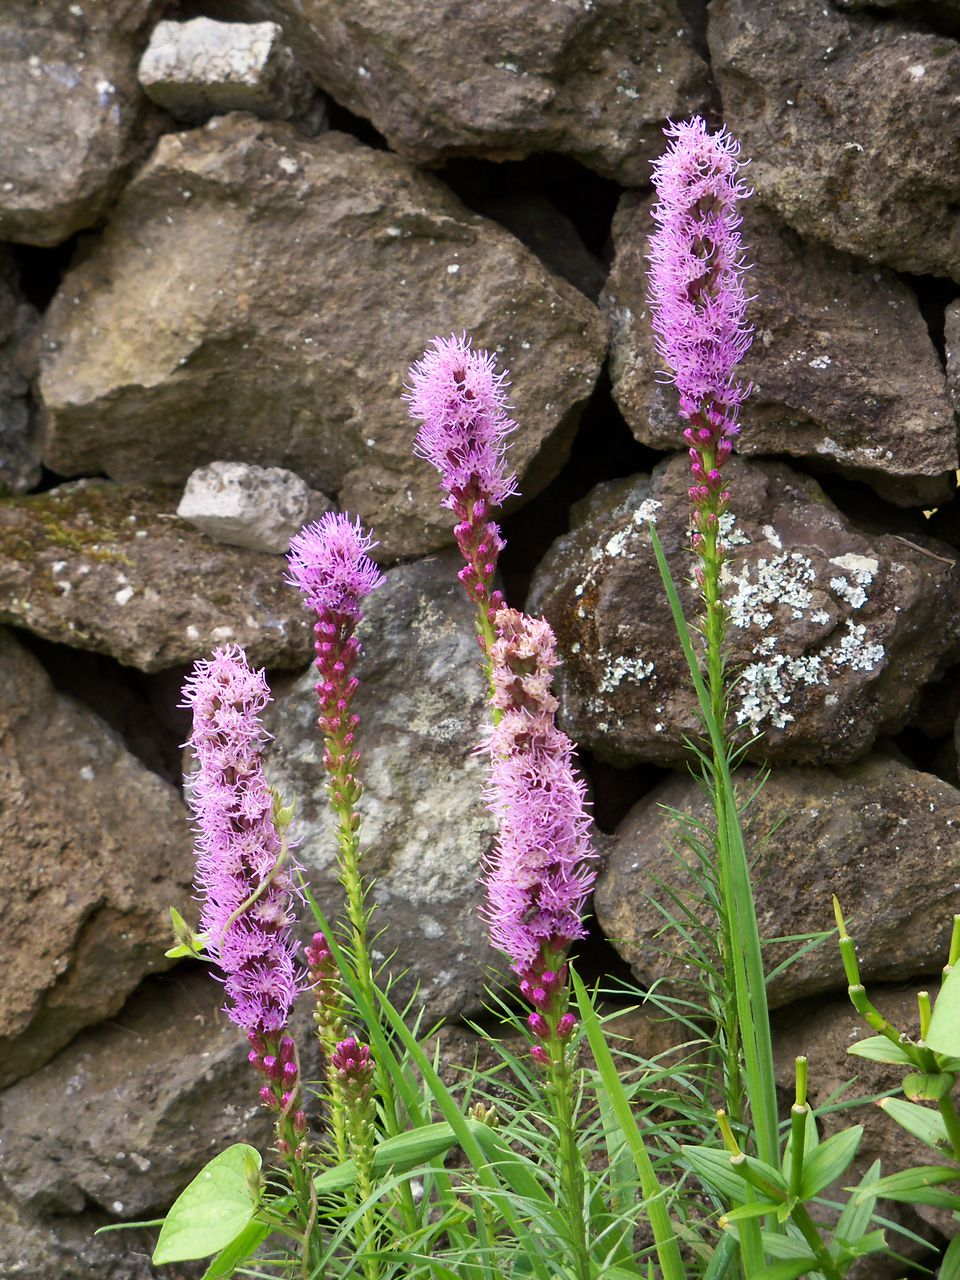 A cluster of liatris in front of a rock wall